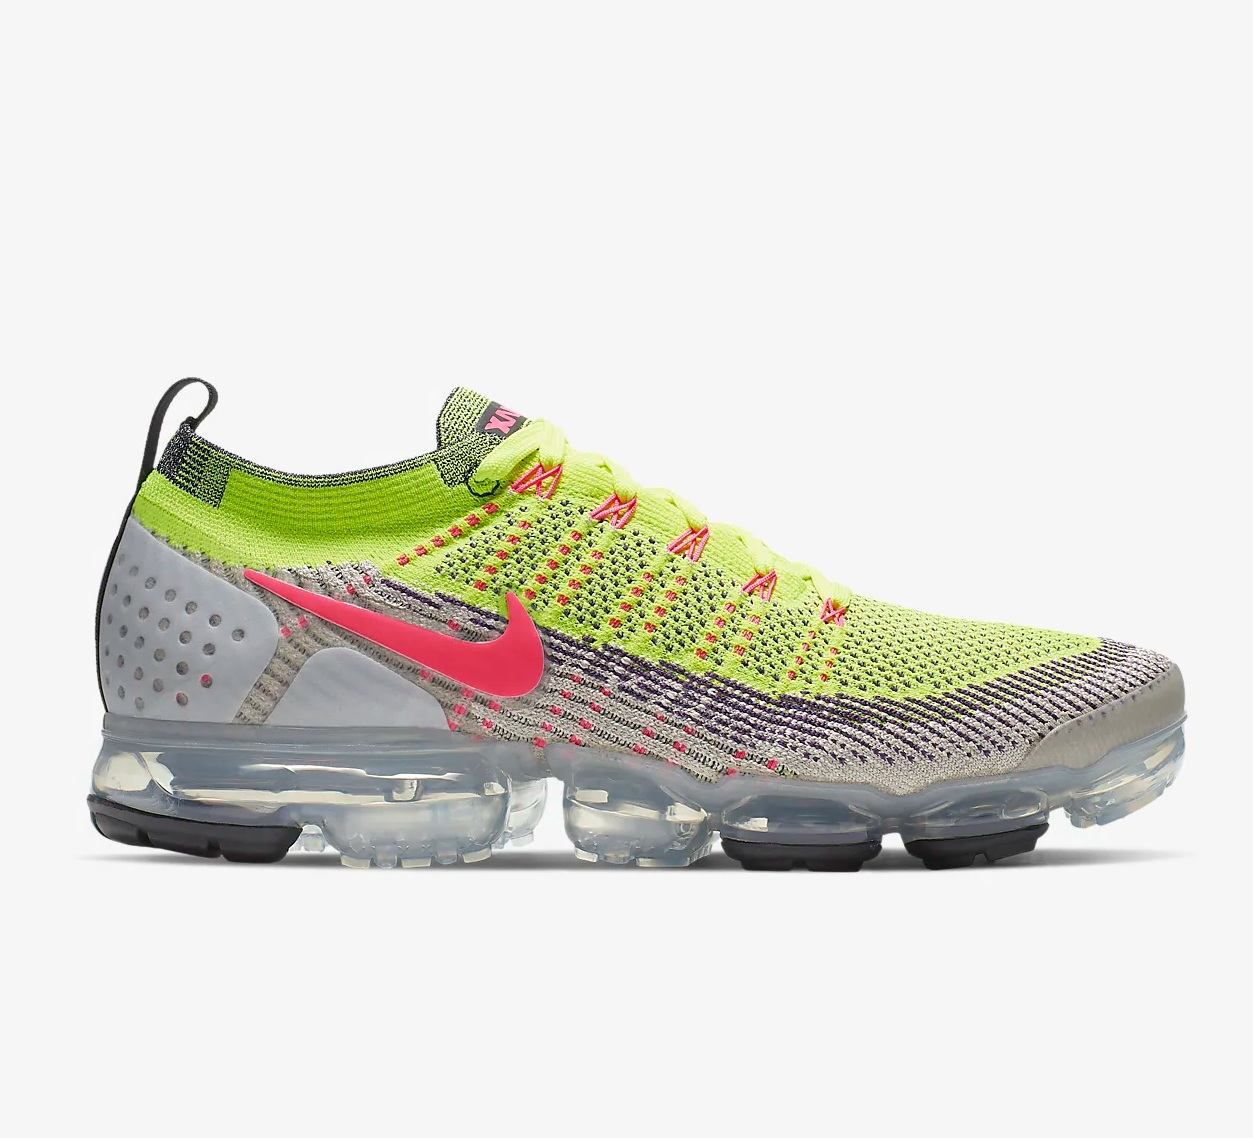 03eda65992 Now Available: NIke Air VaporMax Flyknit 2